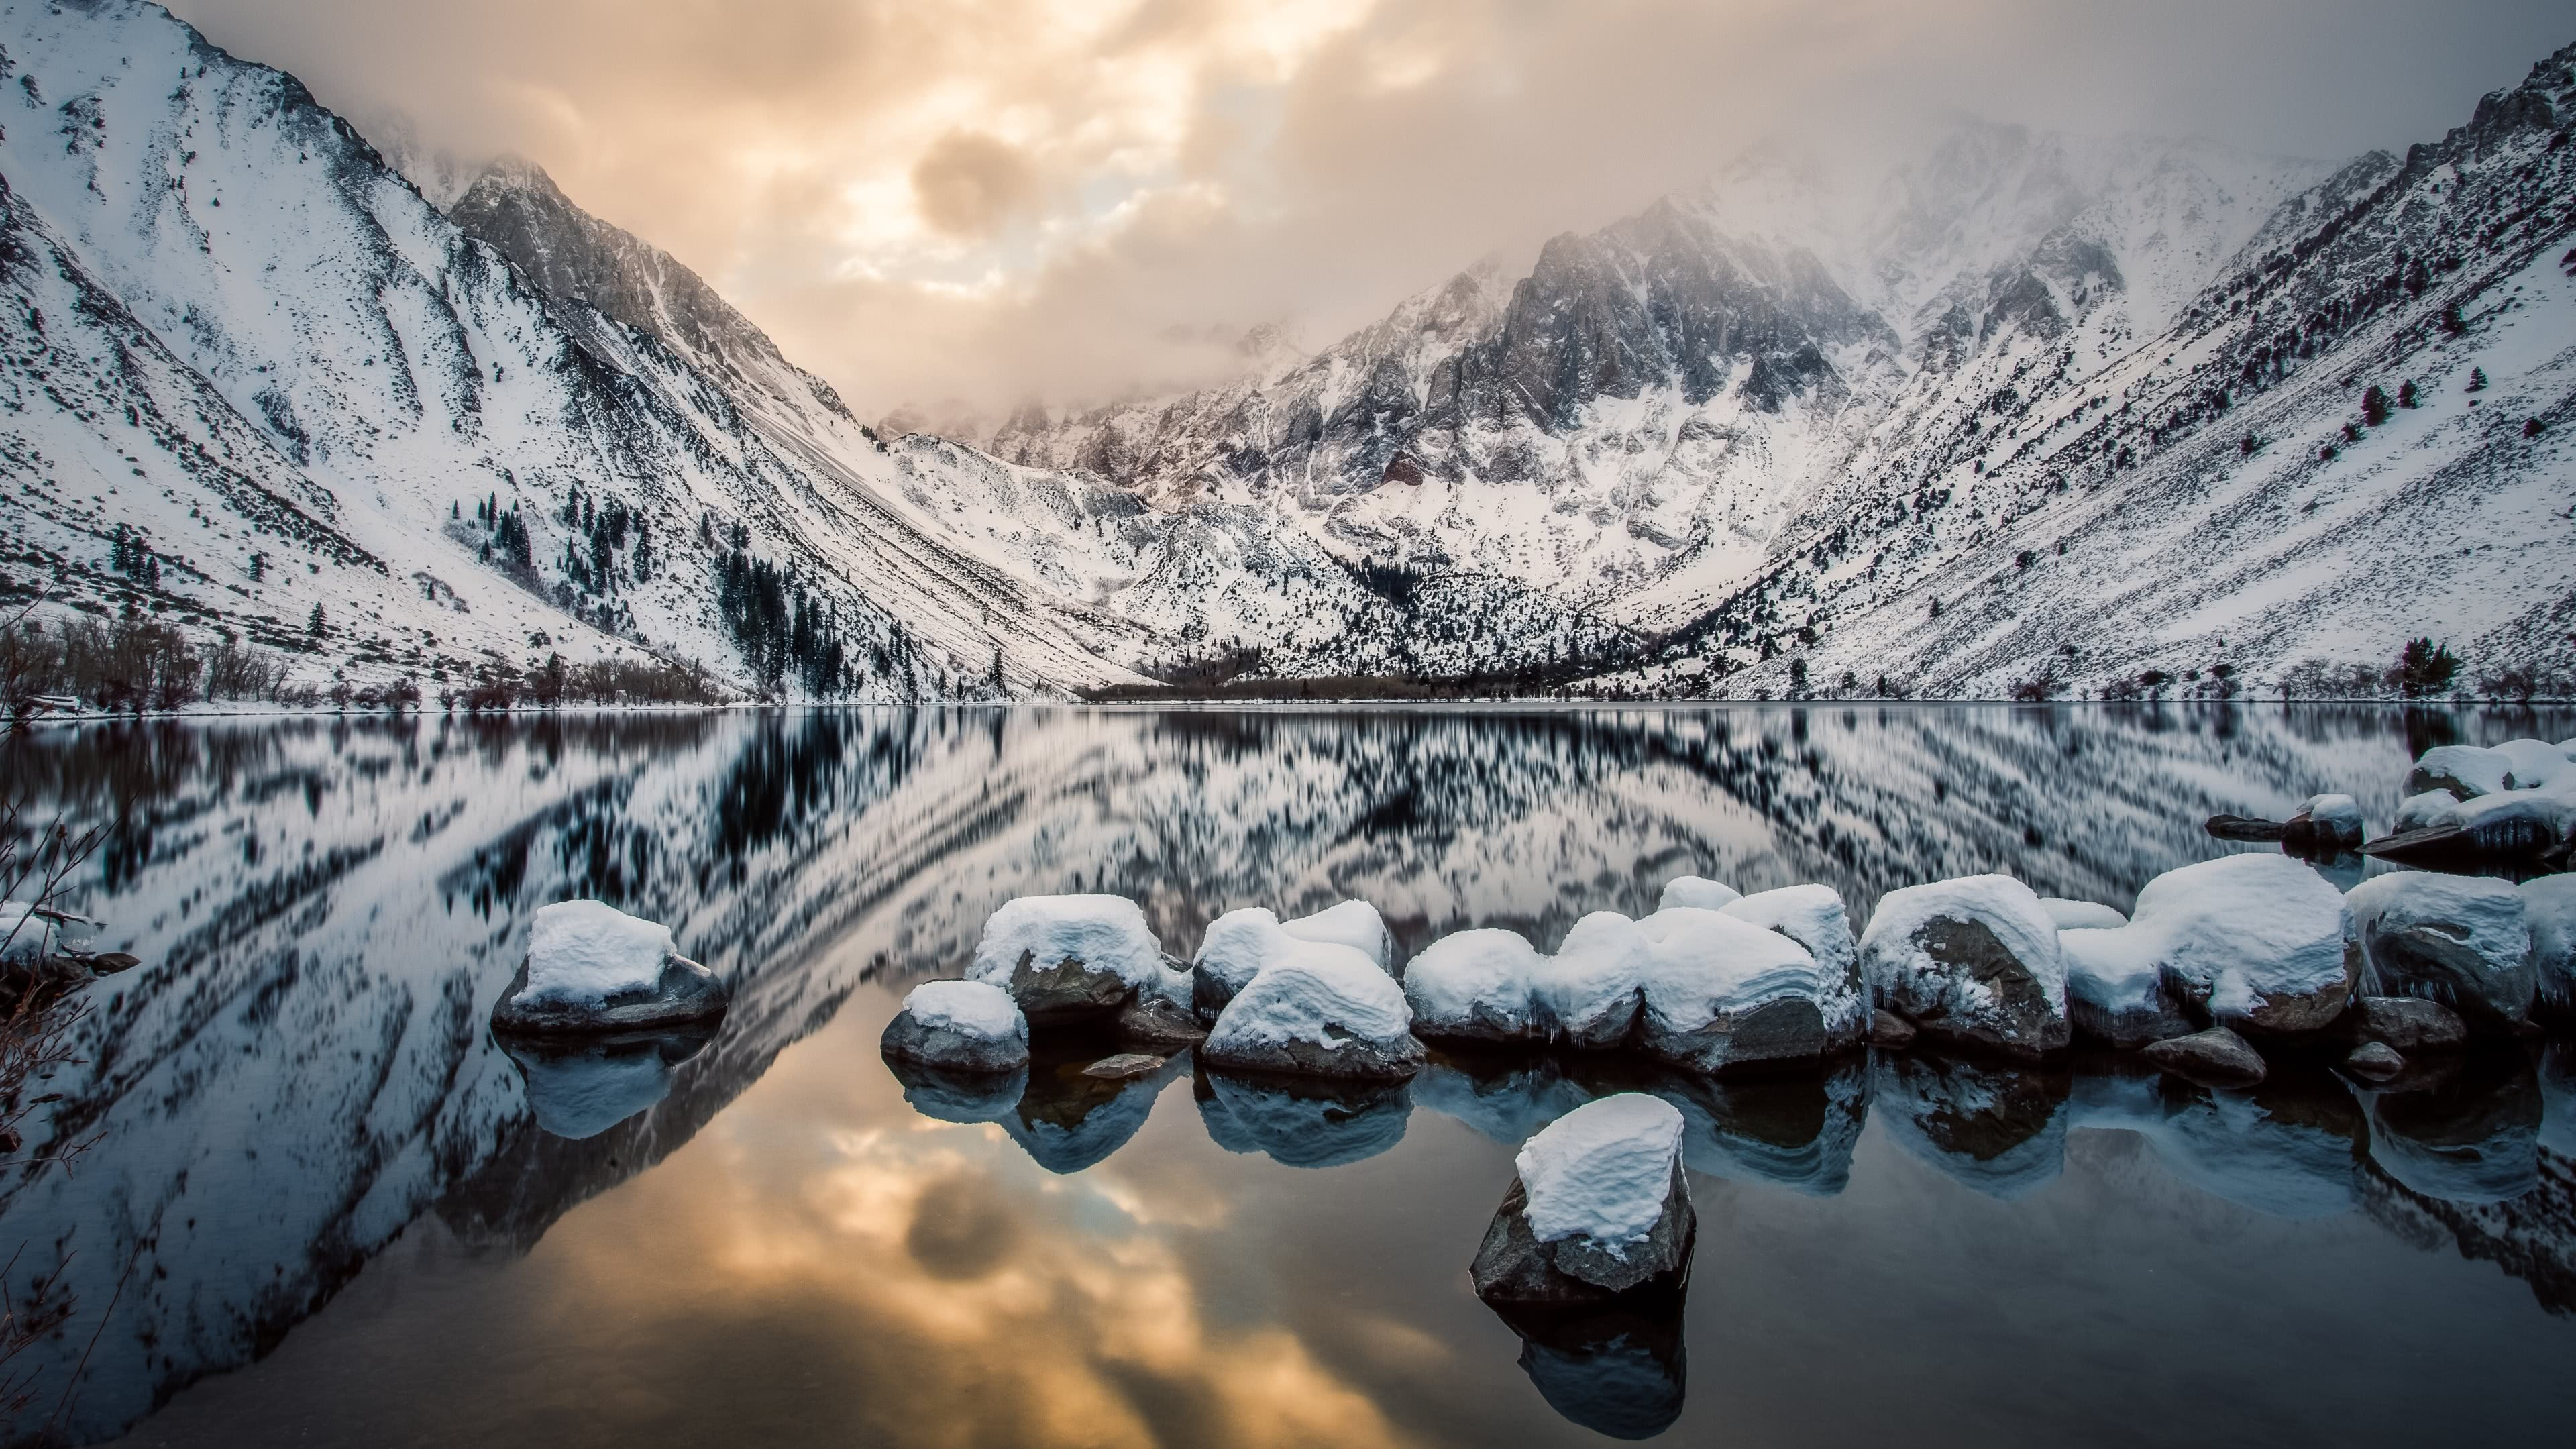 convict lake sherwin range sierra nevada california united states 4k wallpaper